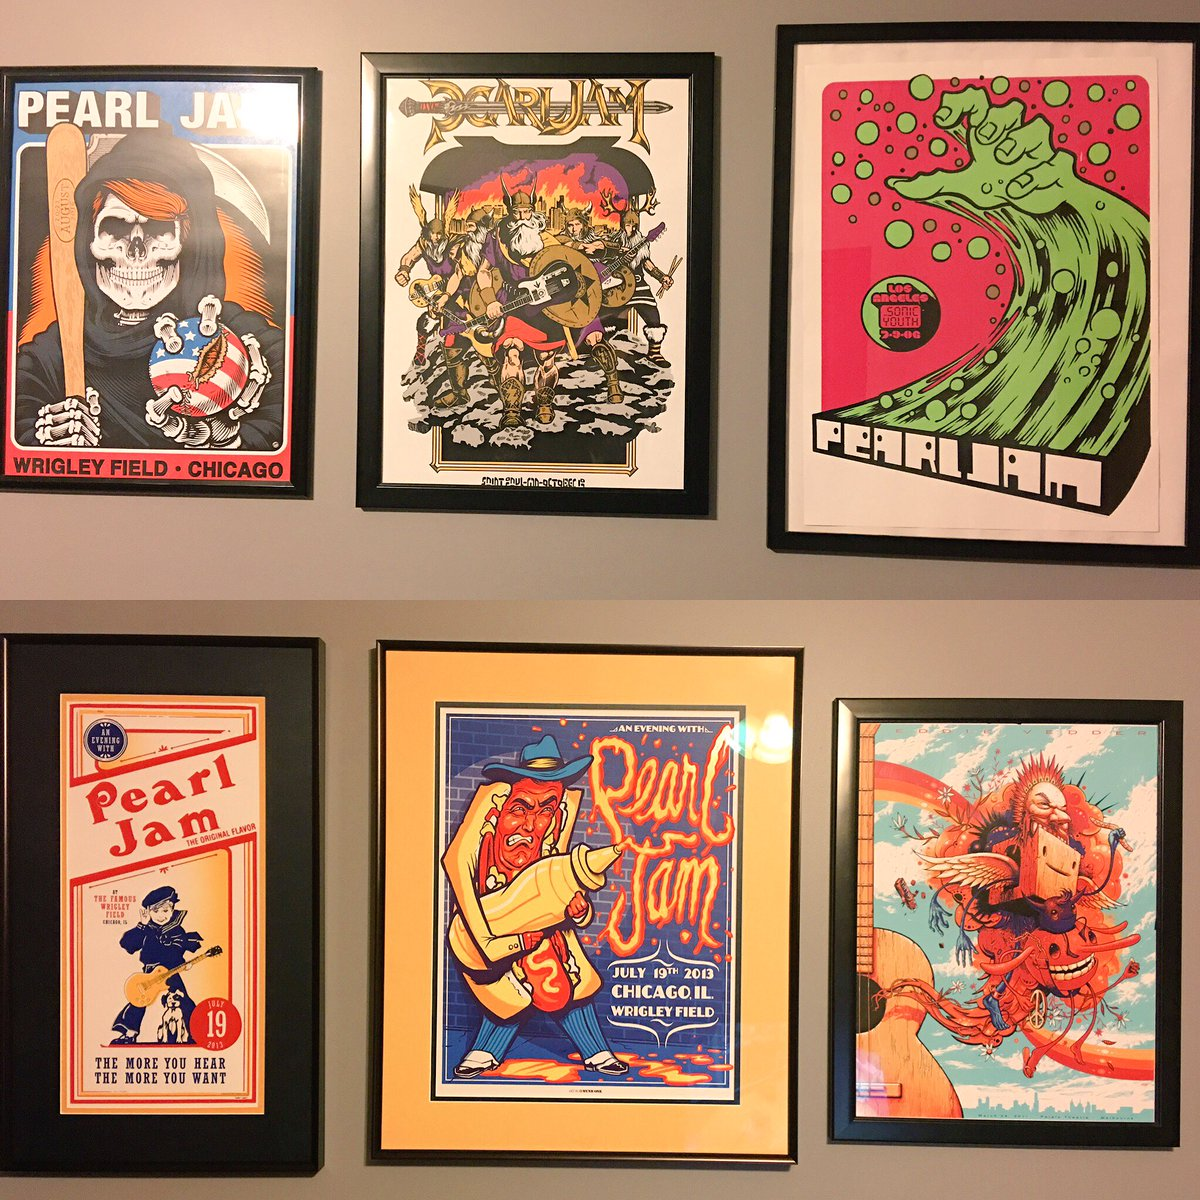 These oughta motivate me in the morning. Some of my fav @PearlJam show posters are hung. https://t.co/dk8p5ZIb5X